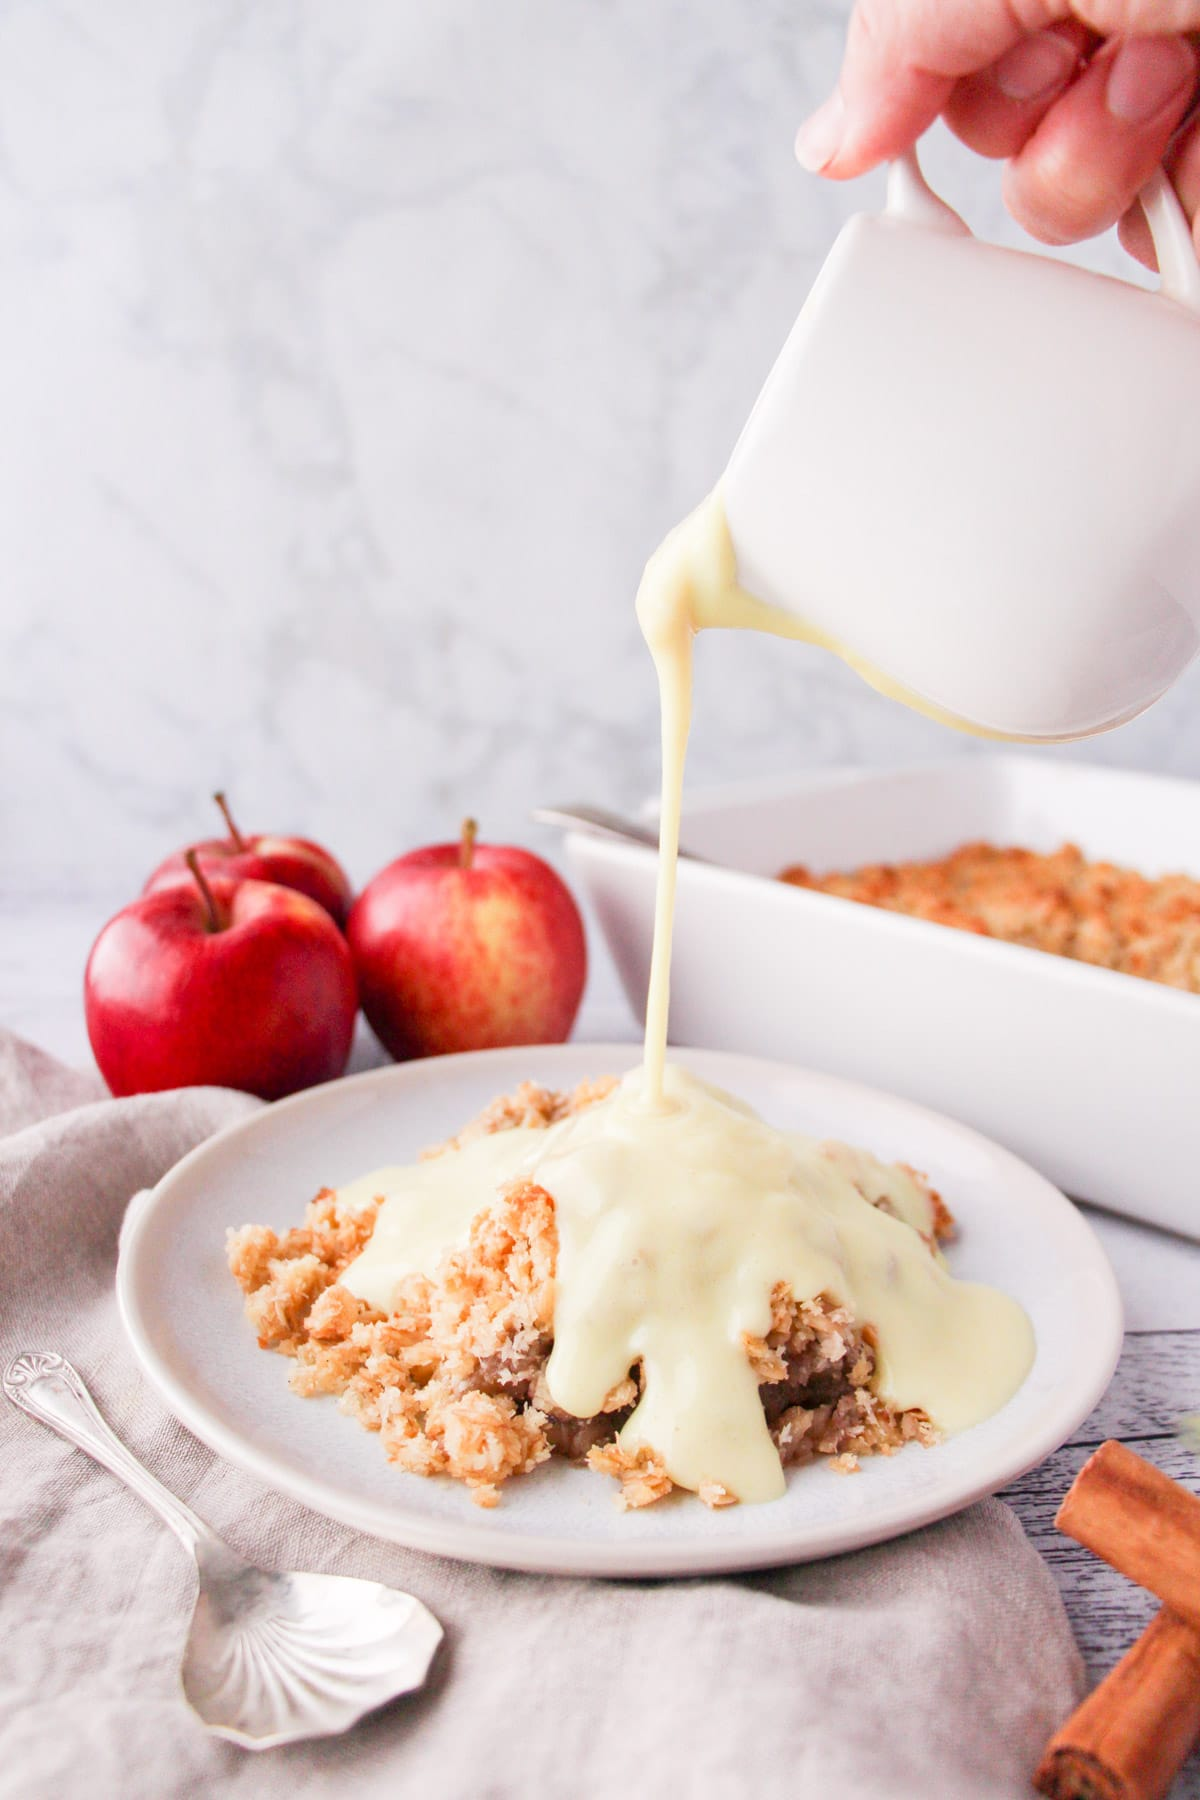 Vegan custard being poured over a vegan apple crumble, with apples and baking dish in background.